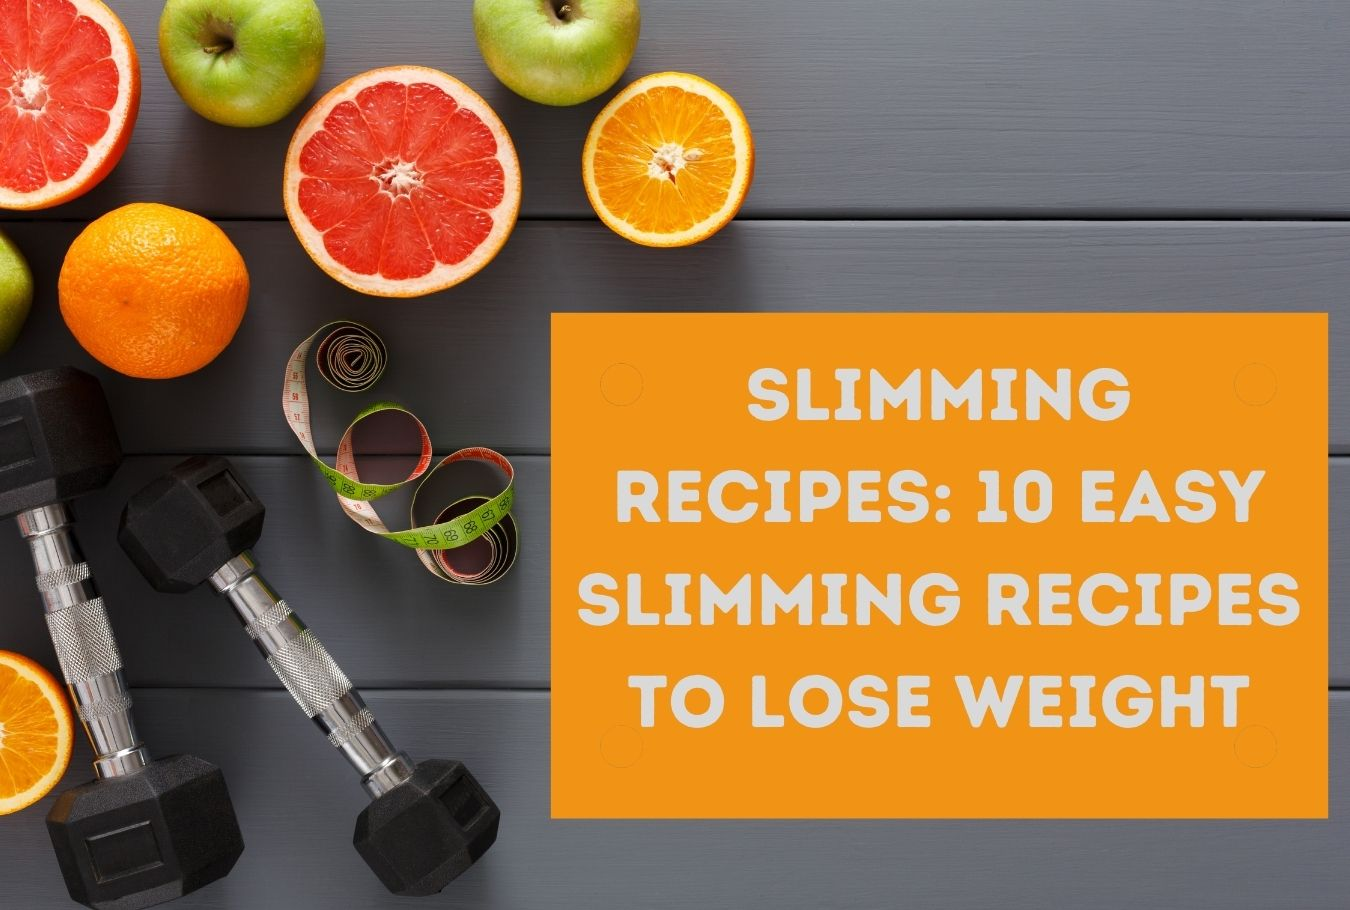 Slimming-recipes-10-easy-slimming-recipes-to-lose-weight